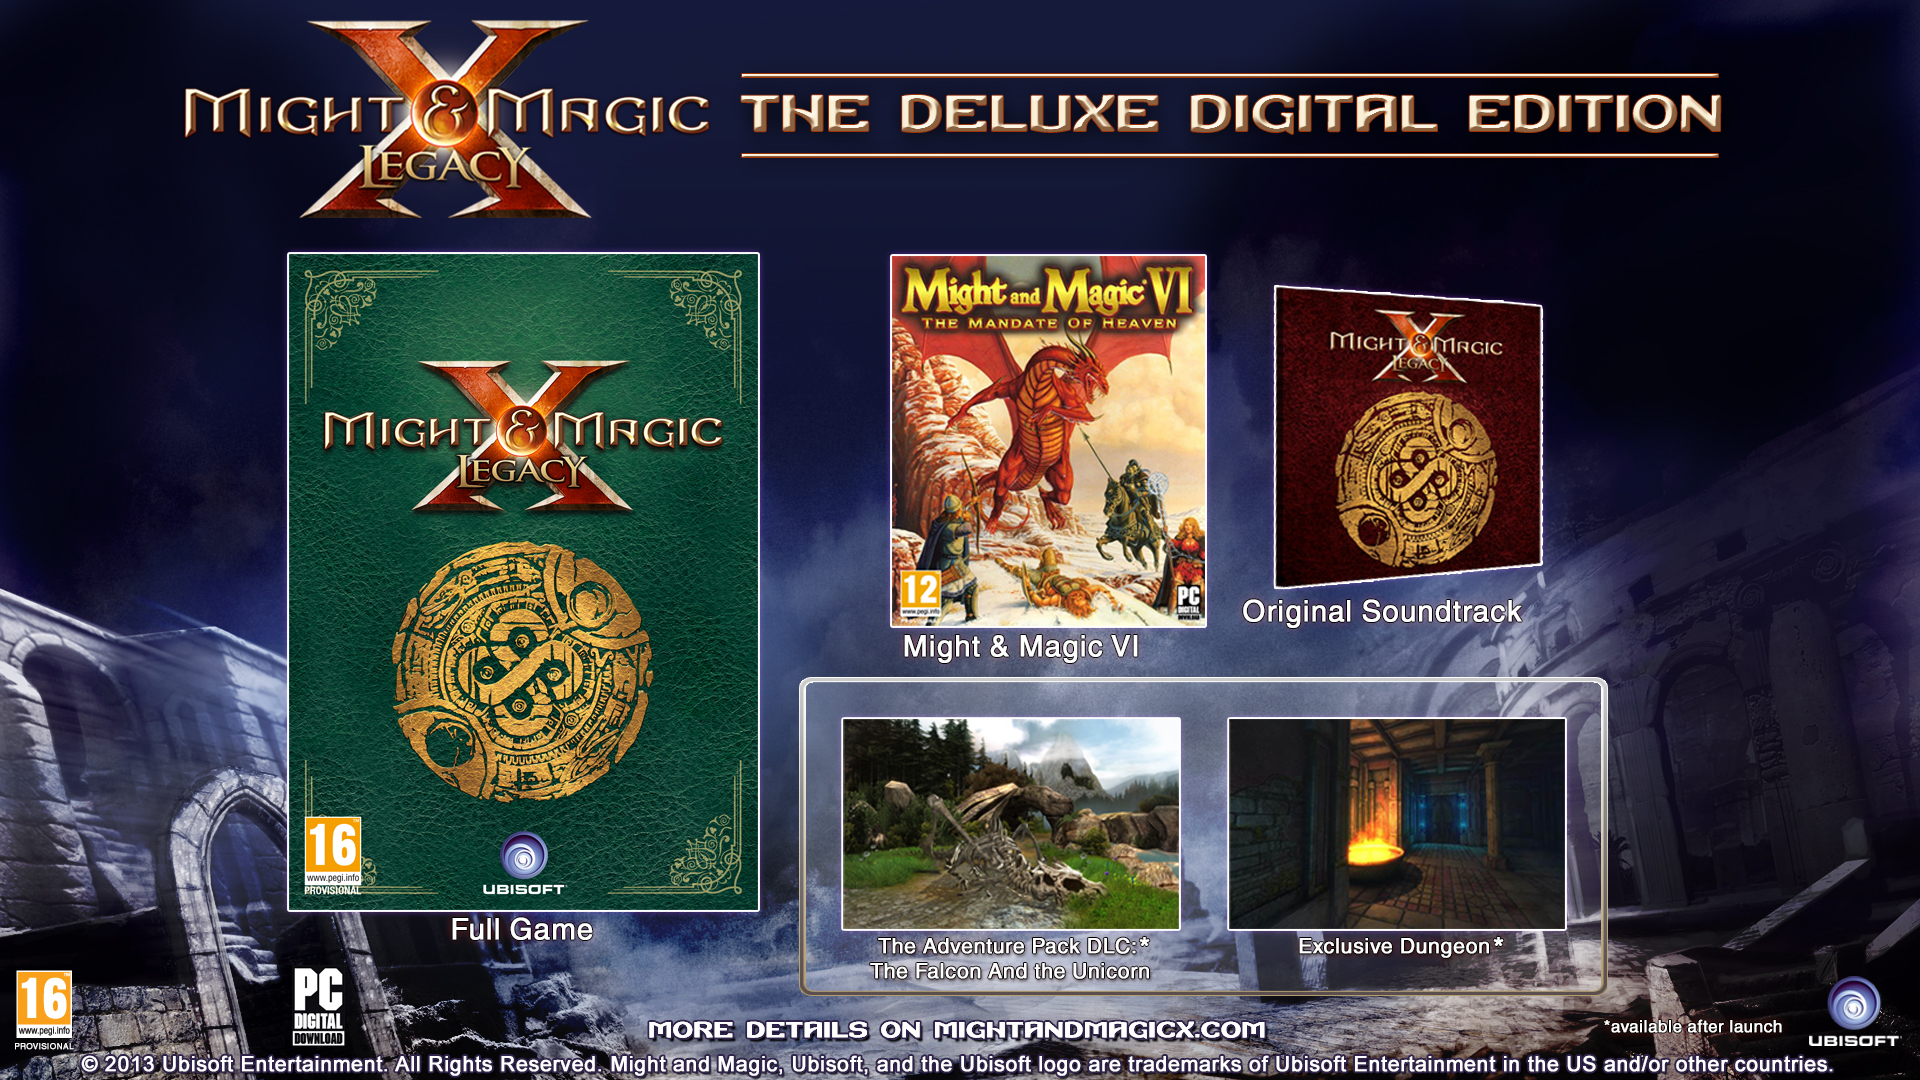 Might & Magic X - Legacy game image